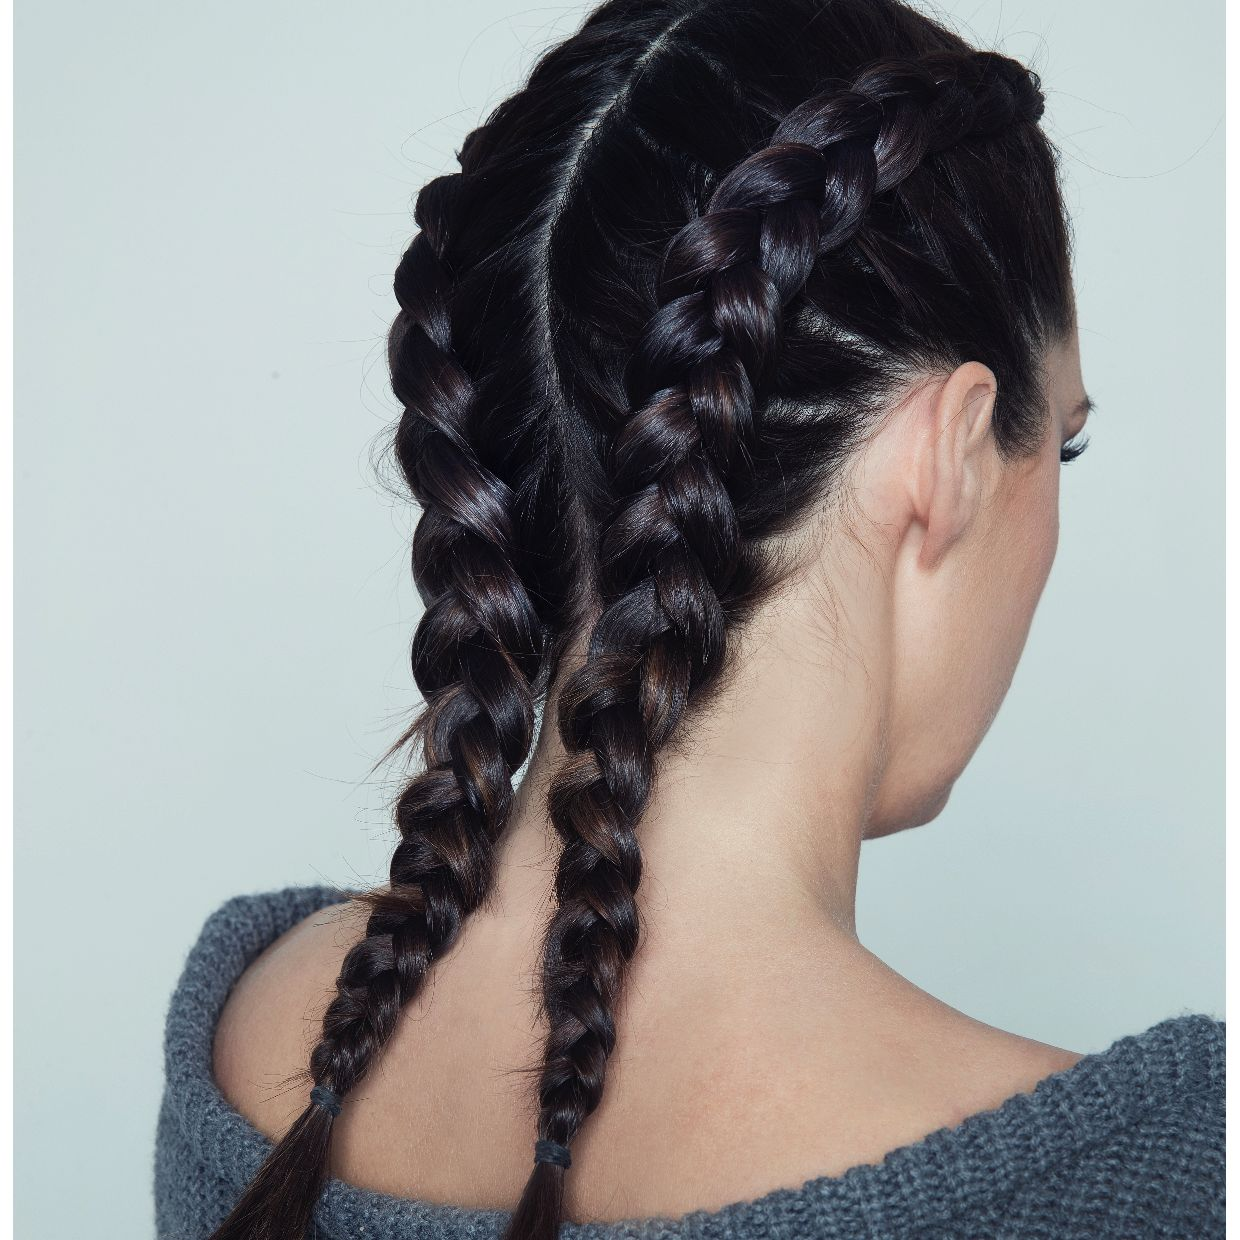 Hairstyling - 30 min